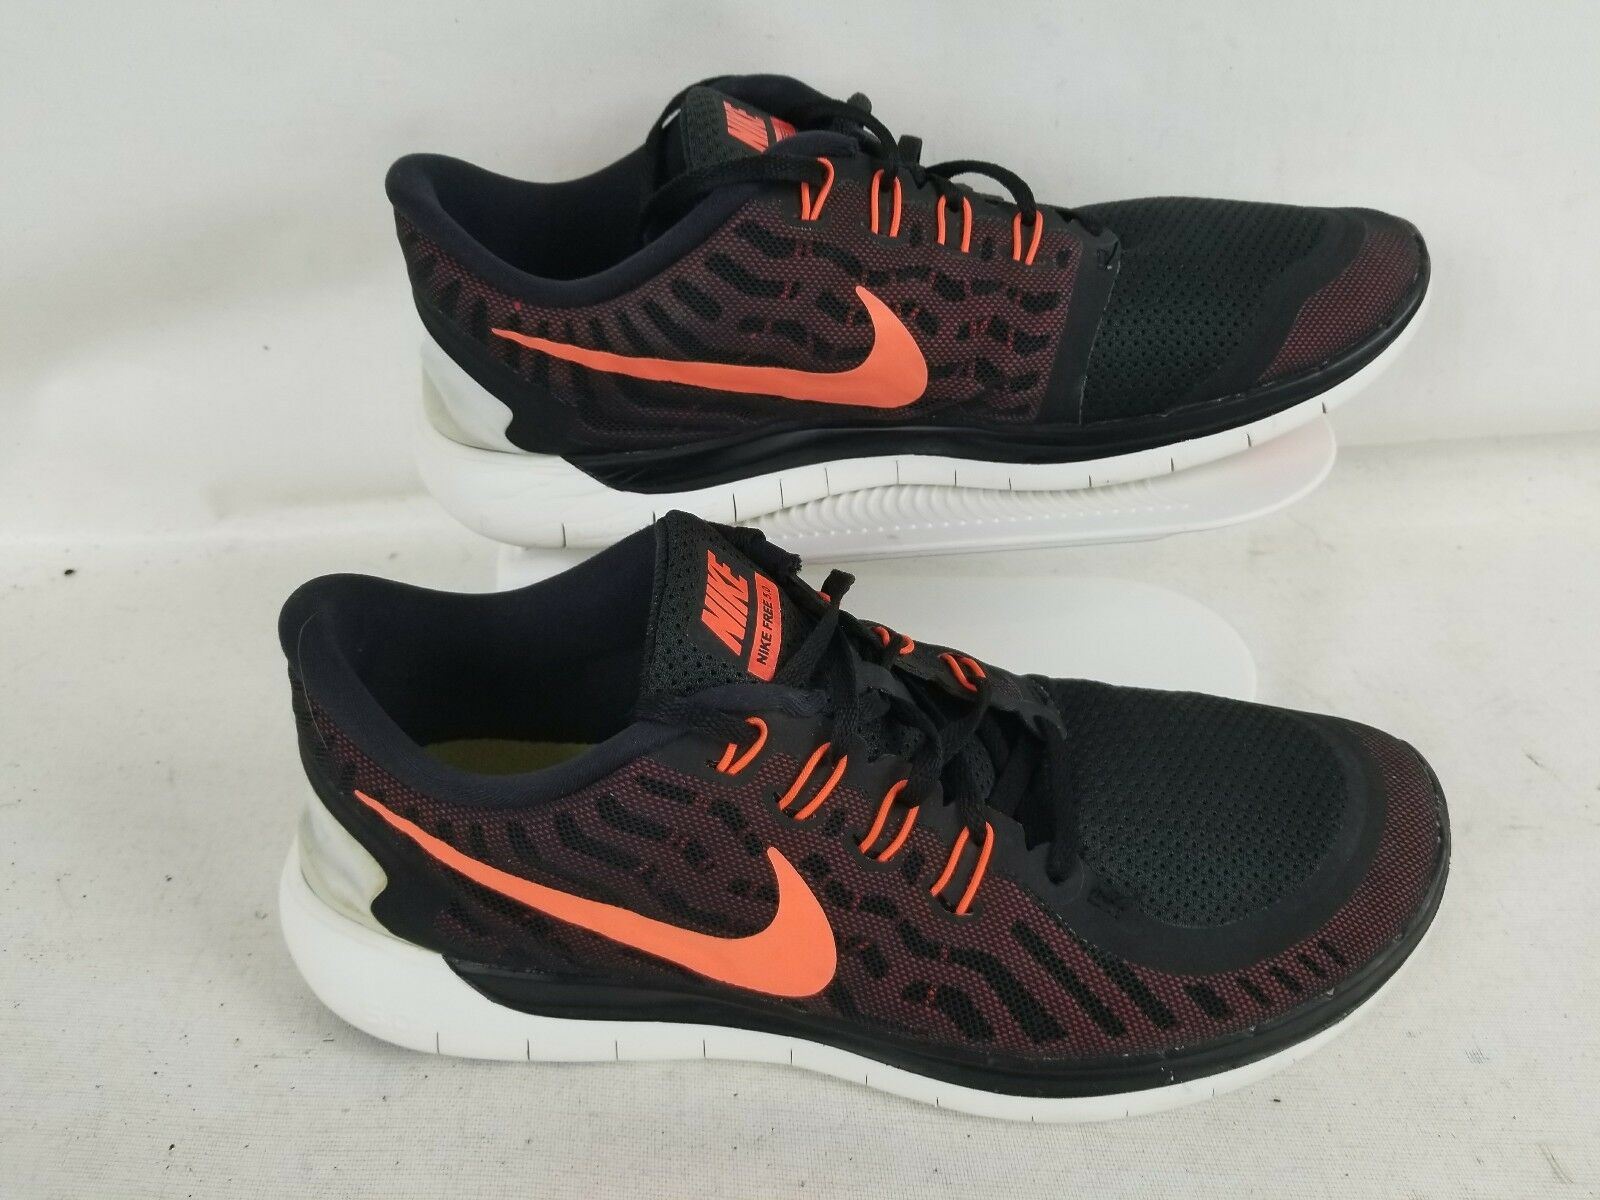 Nike Free 5.0 Men's Black orange Walking  Running shoes Size 11